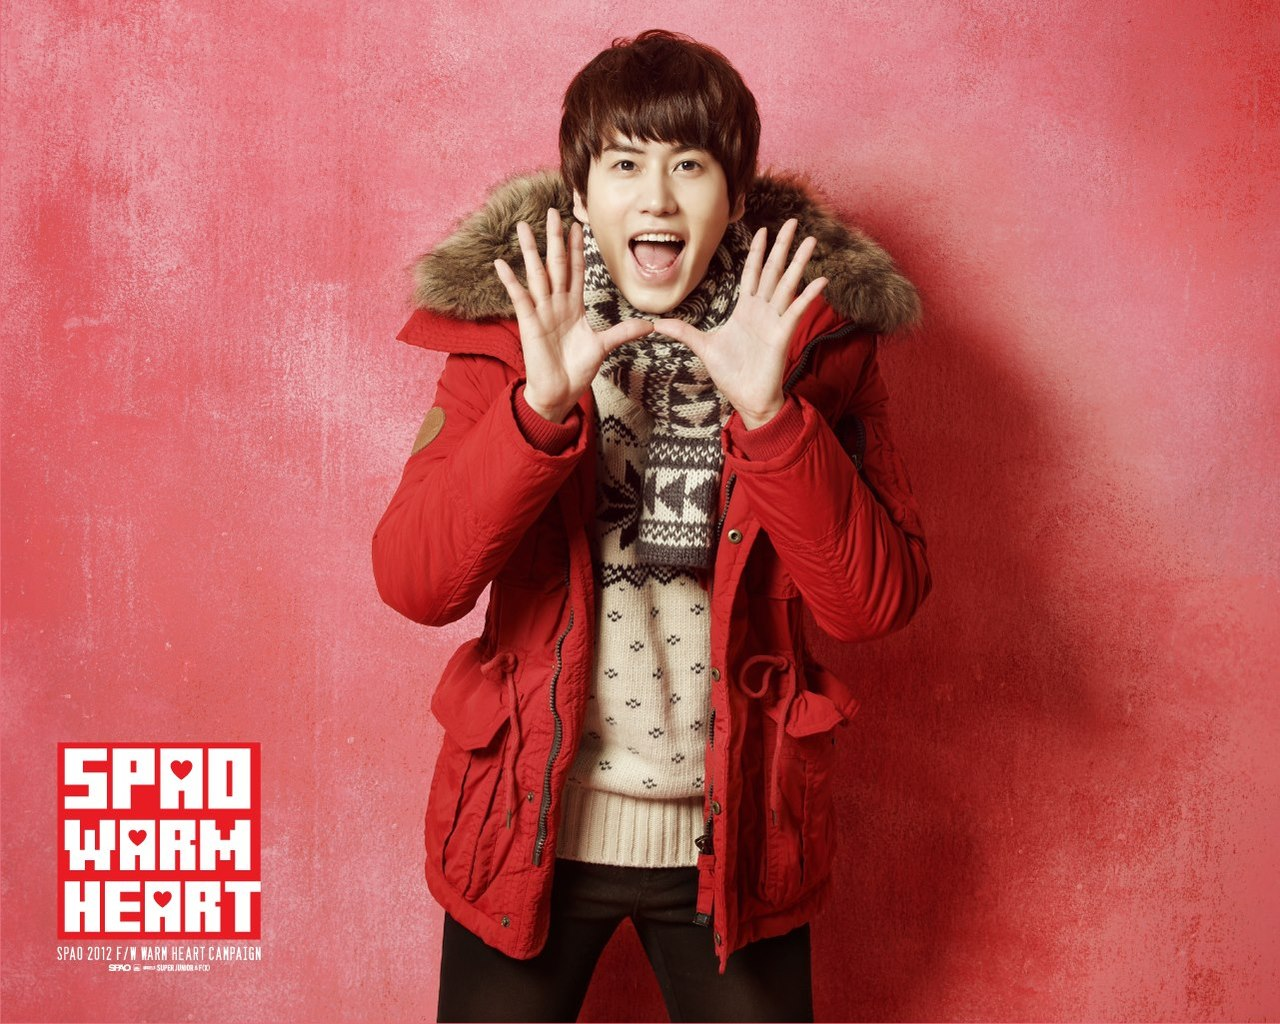 Adorable-CF-Fashion-Jacket-Kyuhyun-Spao-SuperJunior-Korean-Kpop-collections-wallpaper-wp4602870